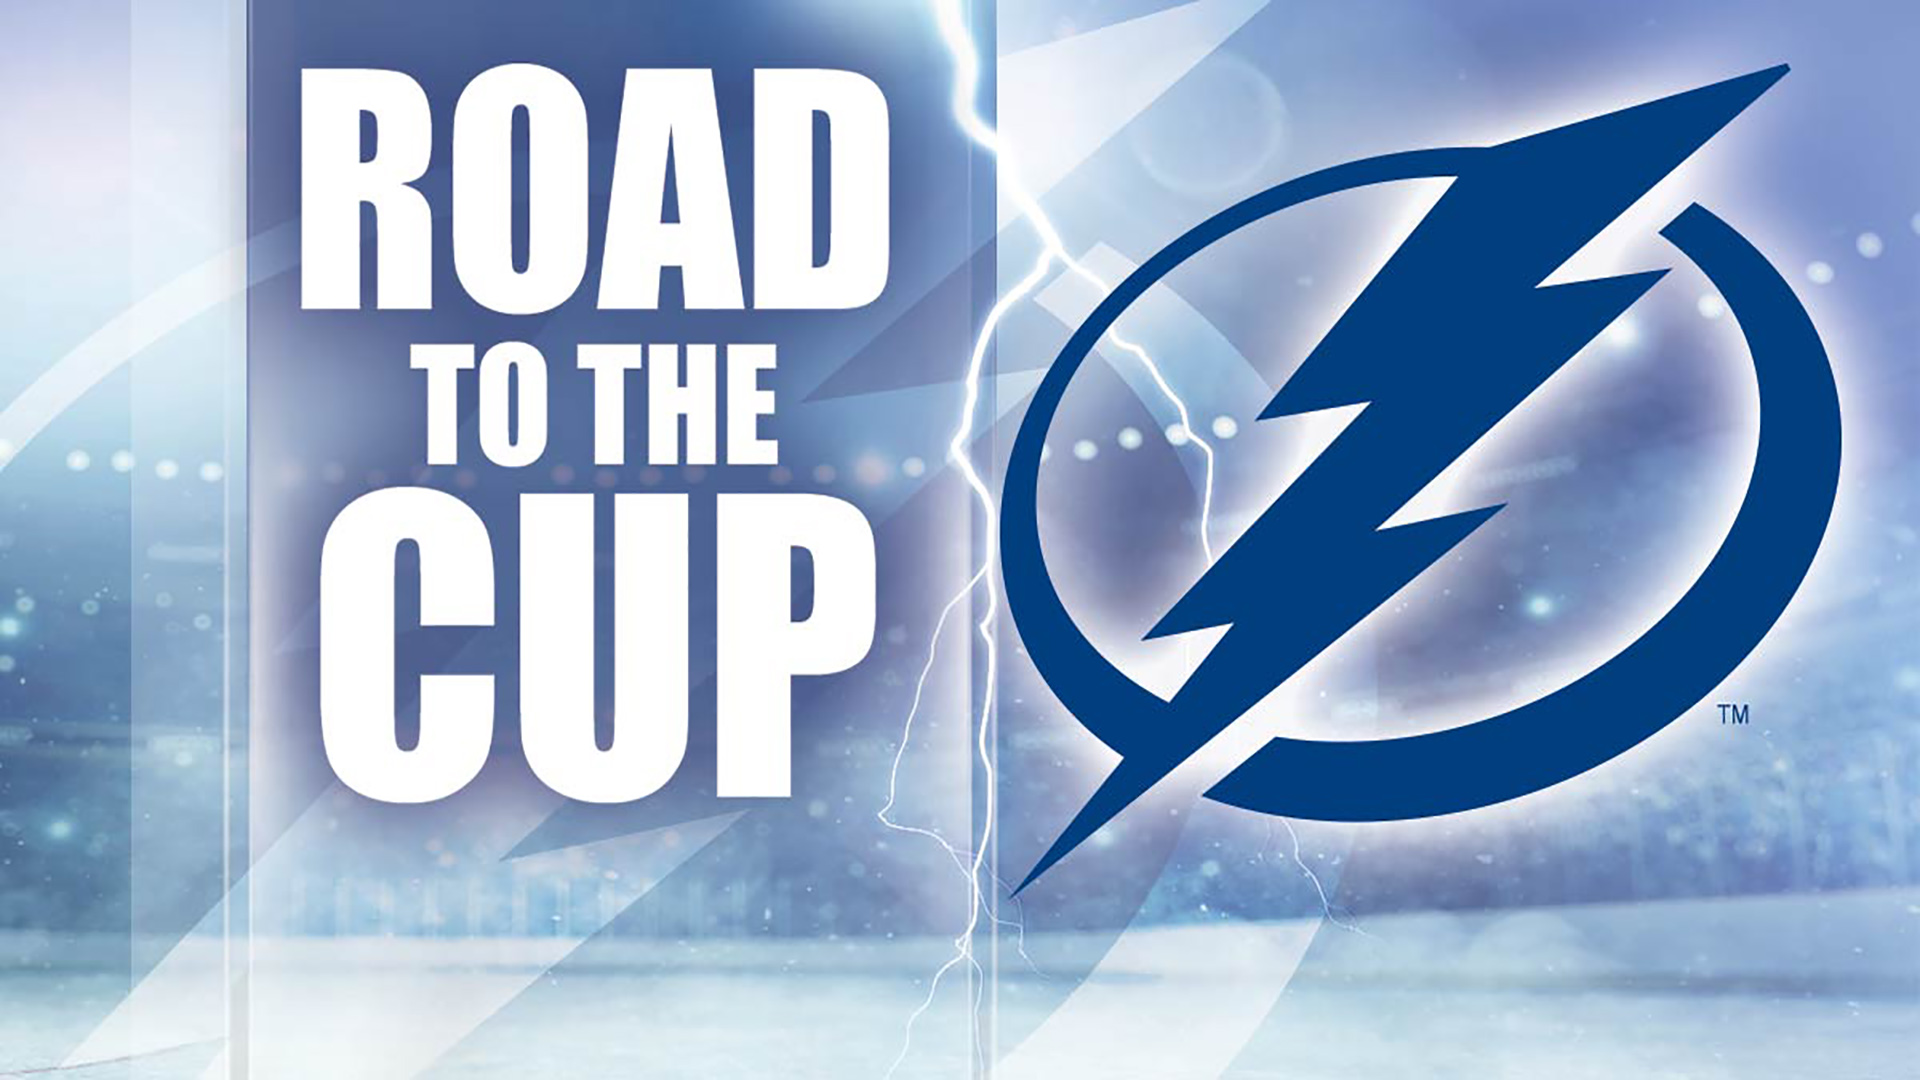 Road-to-the-Cup bolts